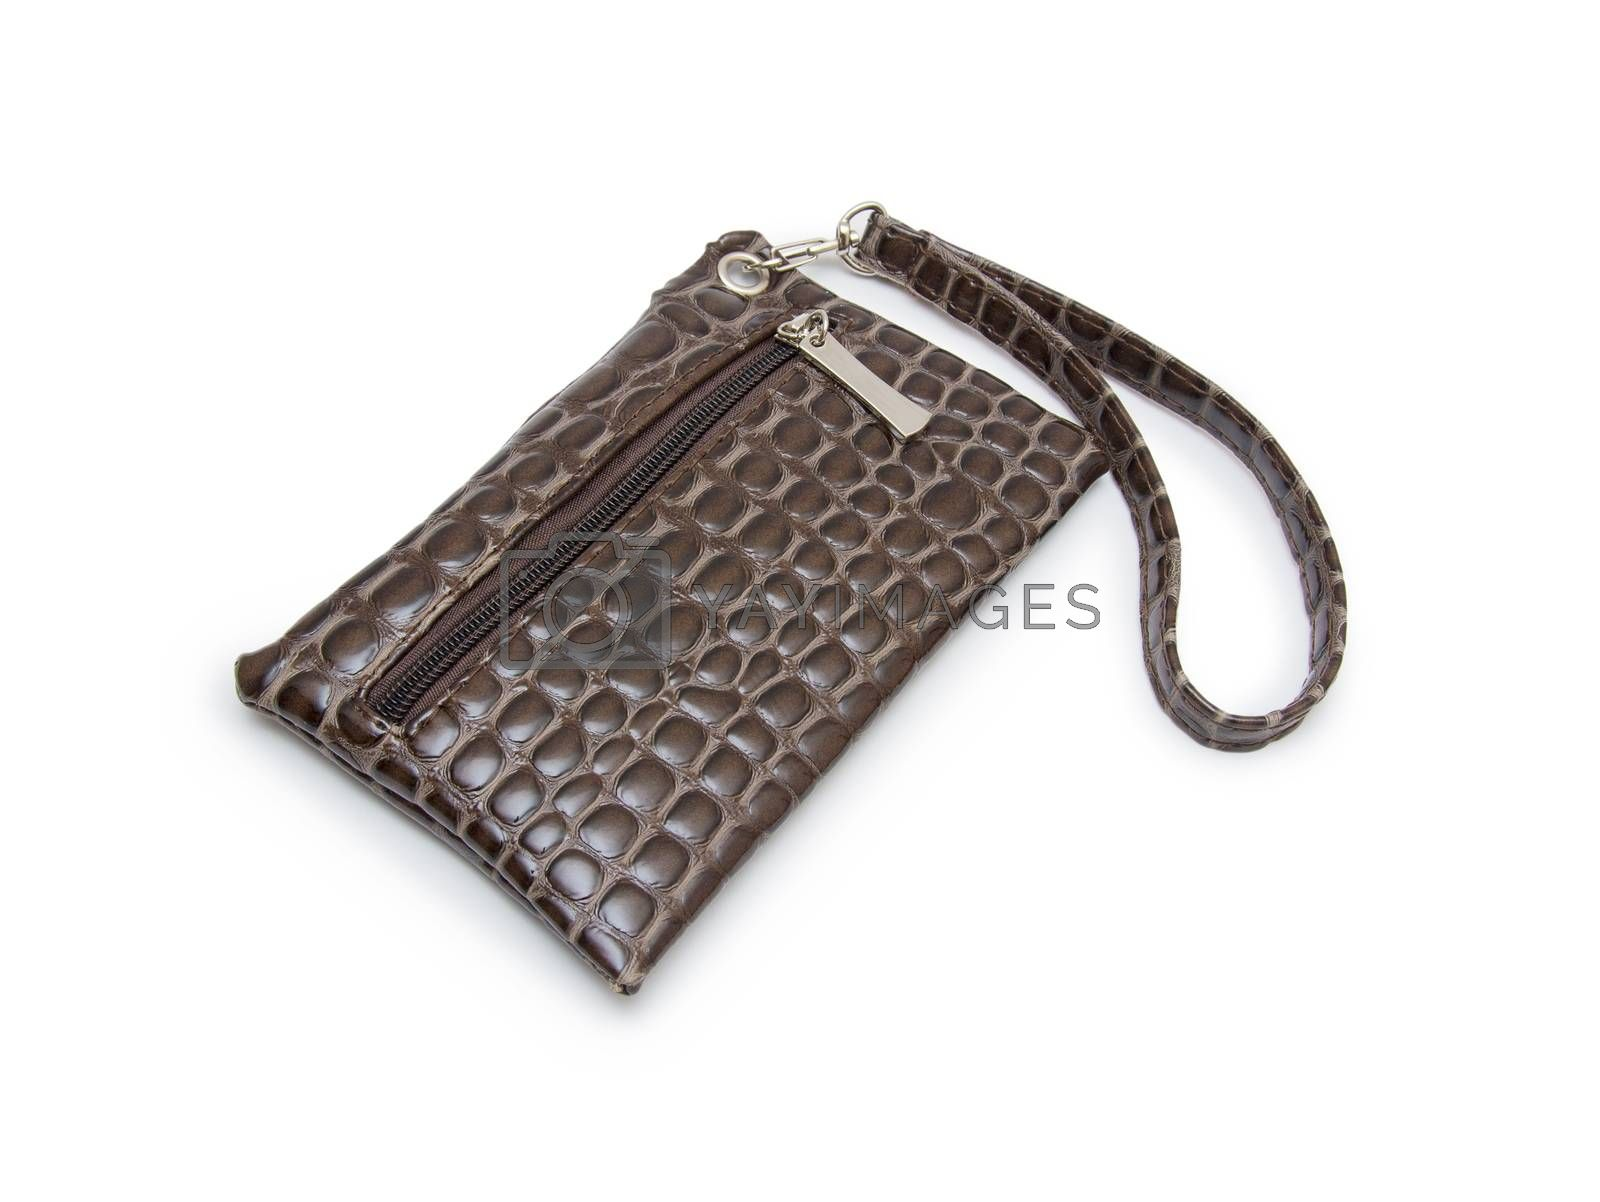 Royalty free image of wallet or purse woman  on a white background by cocoo